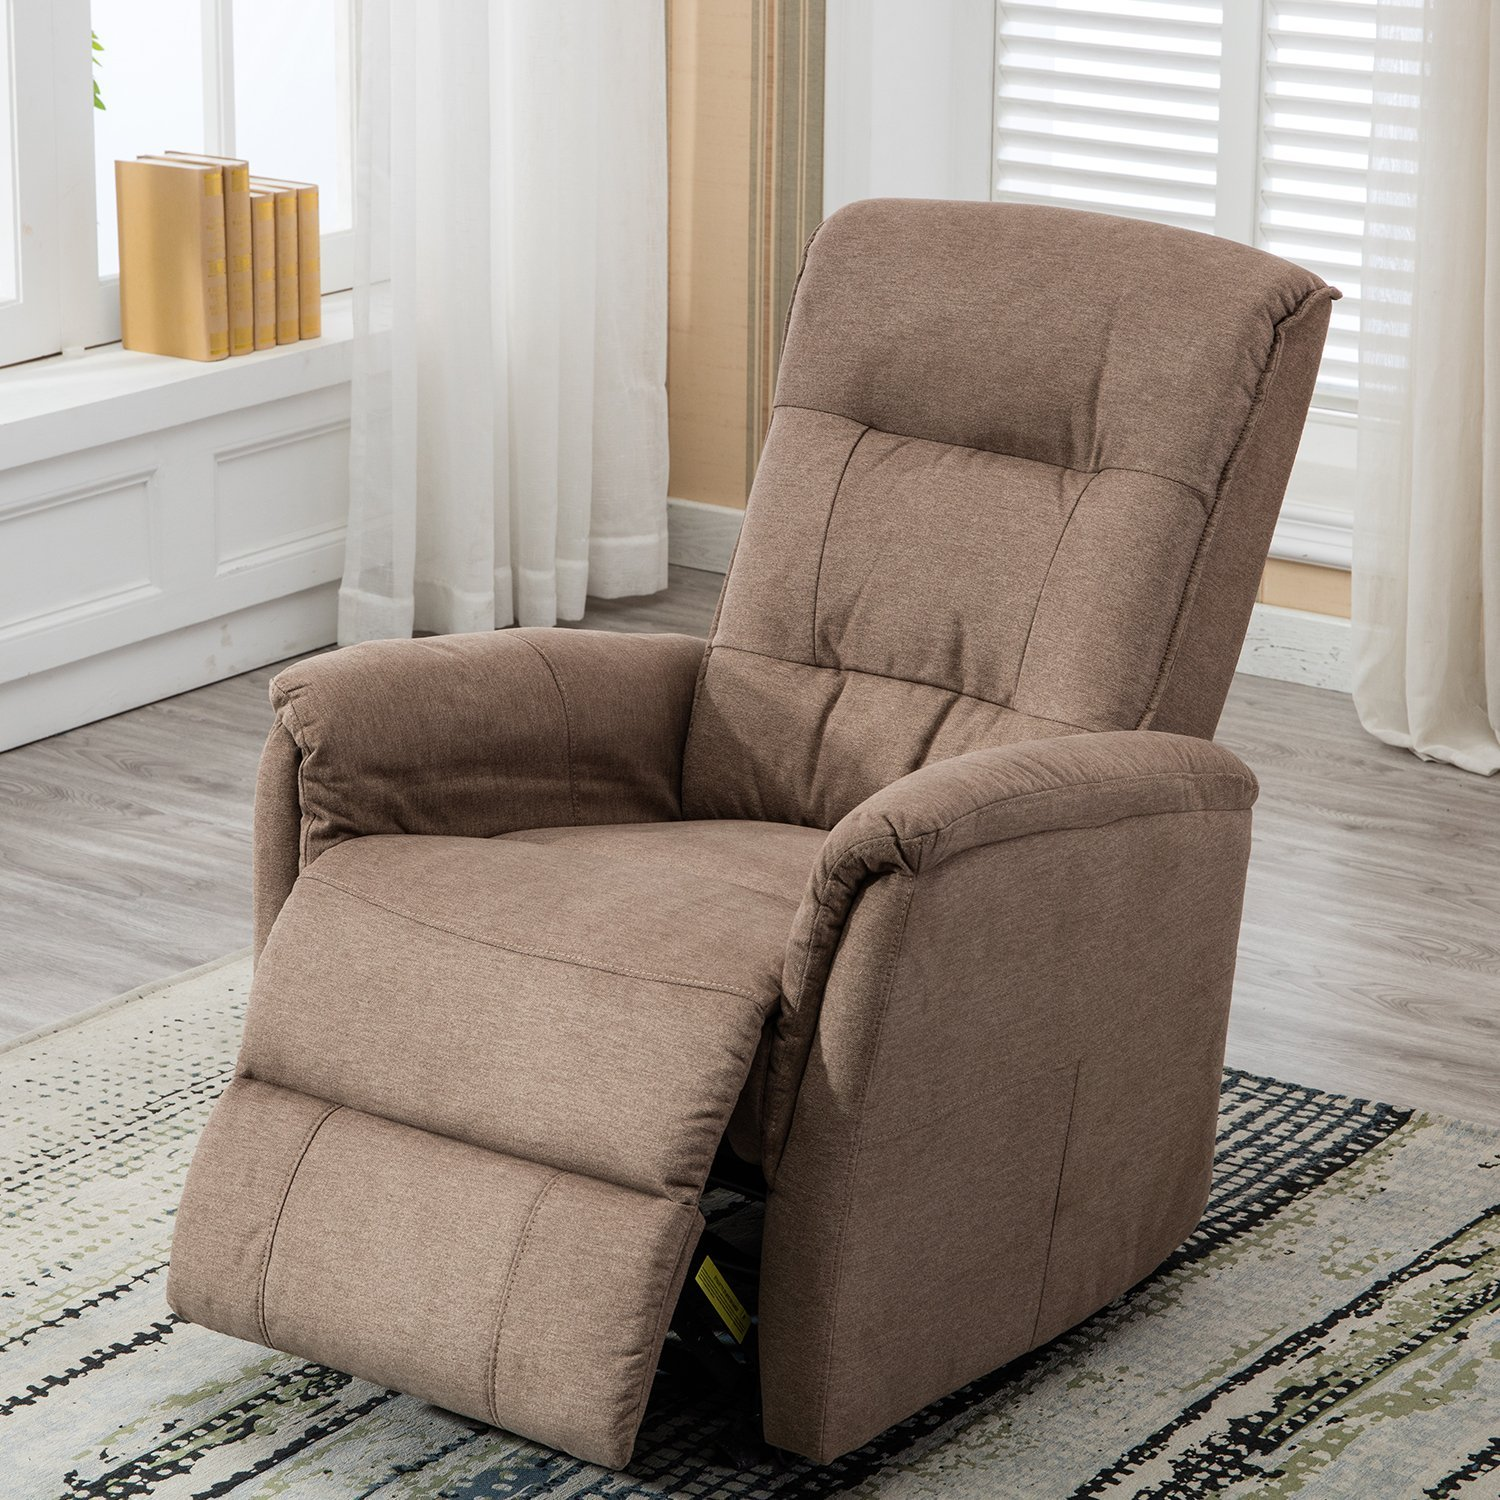 BONZY Glider Recliner Chair with Super Comfy Gliding Track Overstuffed Backrest, Comfy Recliner Sofa - Smoke Gray